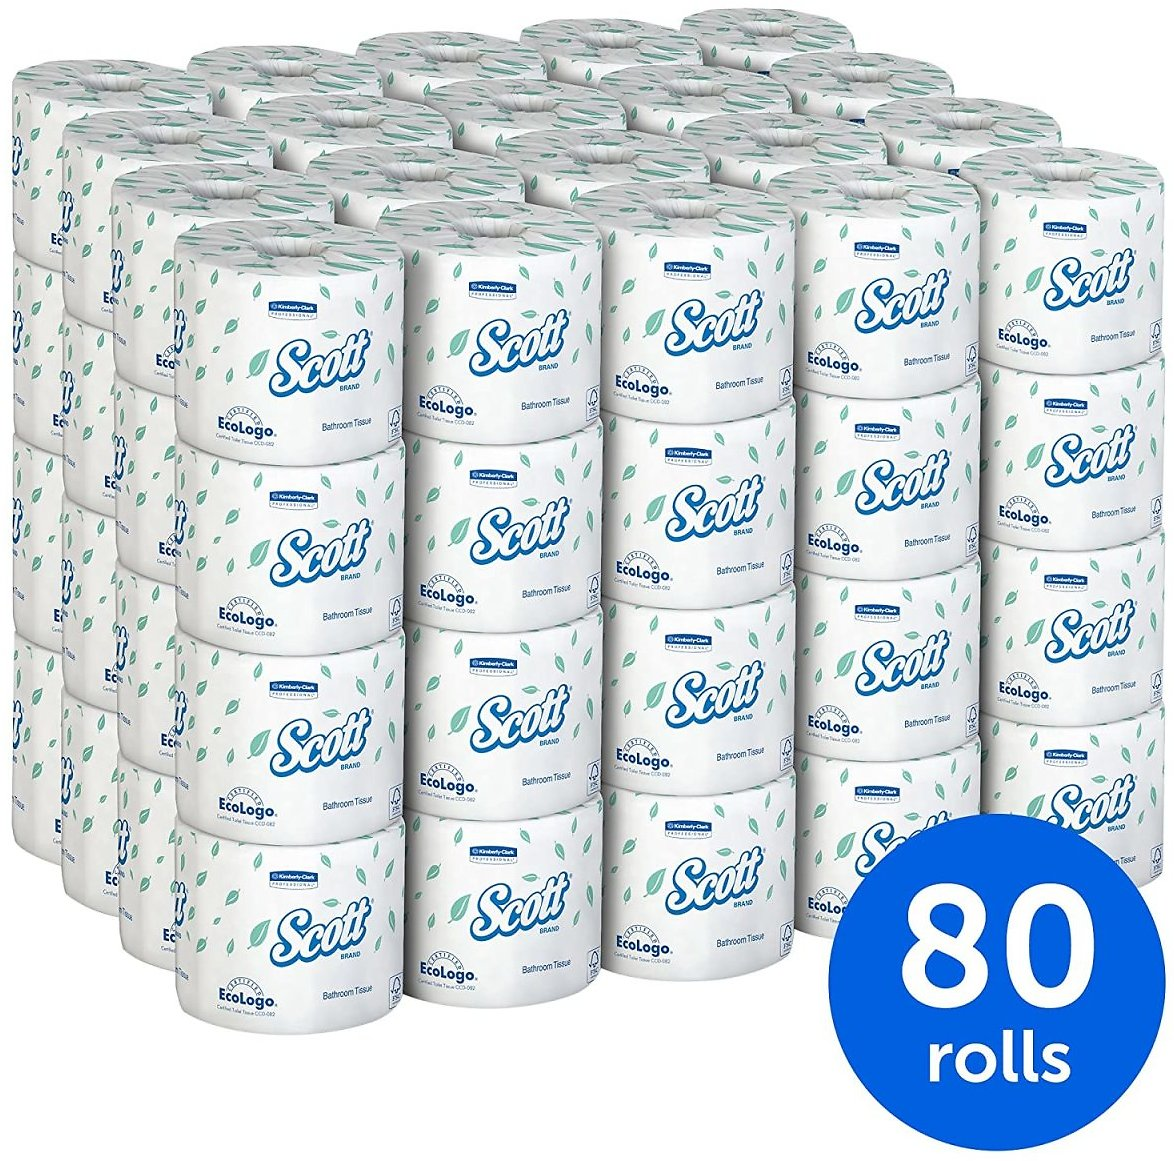 Scott Essential Toilet Paper, 2-PLY, White, 80 Rolls / Case, 550 Sheets / Roll